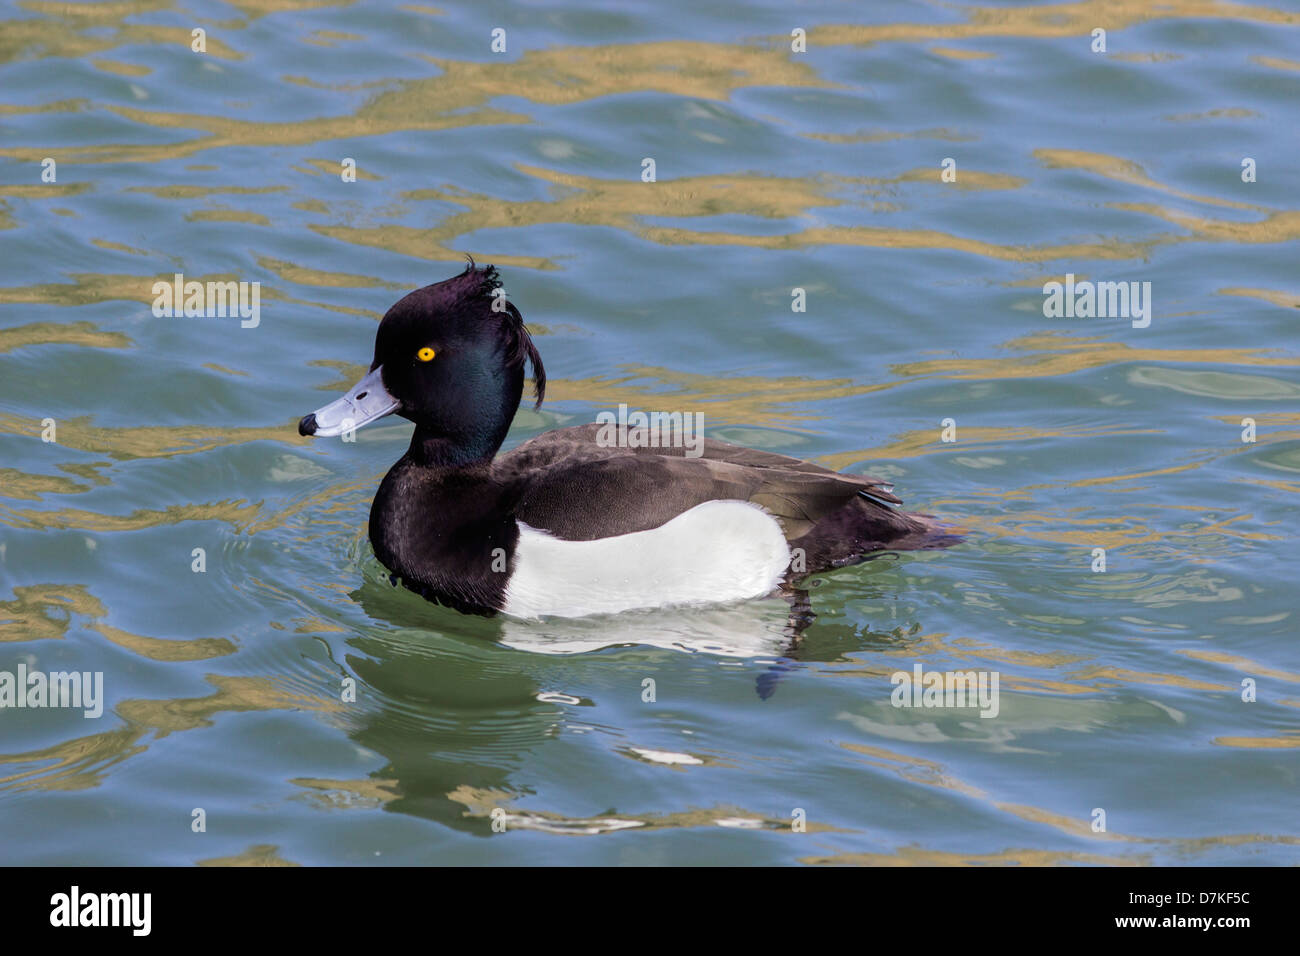 Duck paddling stock photos duck paddling stock images - Swimming pools in weymouth dorset ...